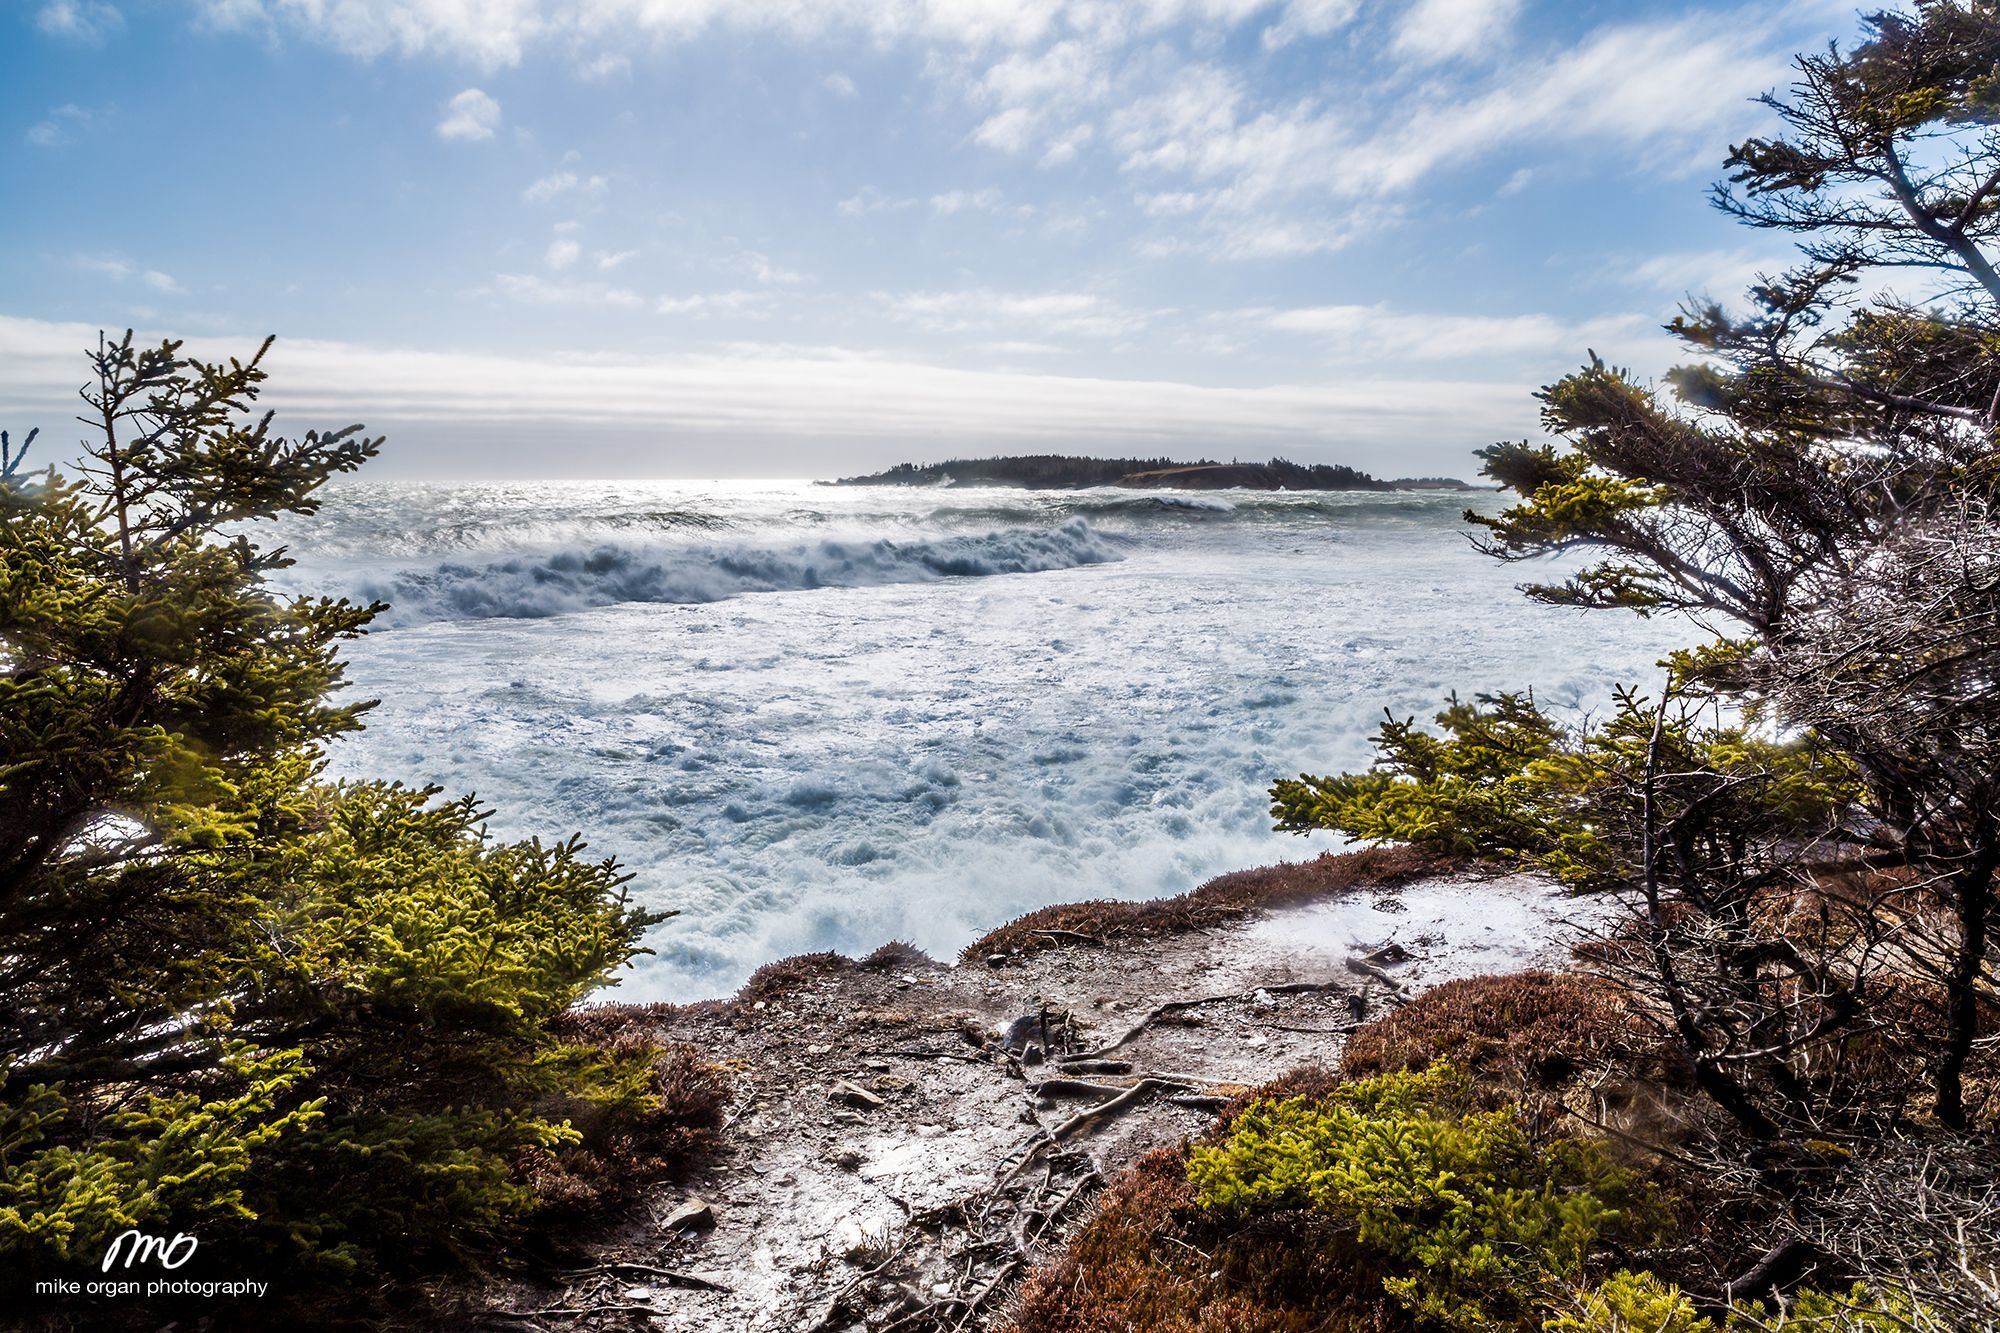 The power of the ocean shook the cliff like thunder under my feet. An unnerving feeling that you can't help but smile about. Gaff Point, Nova Scotia.